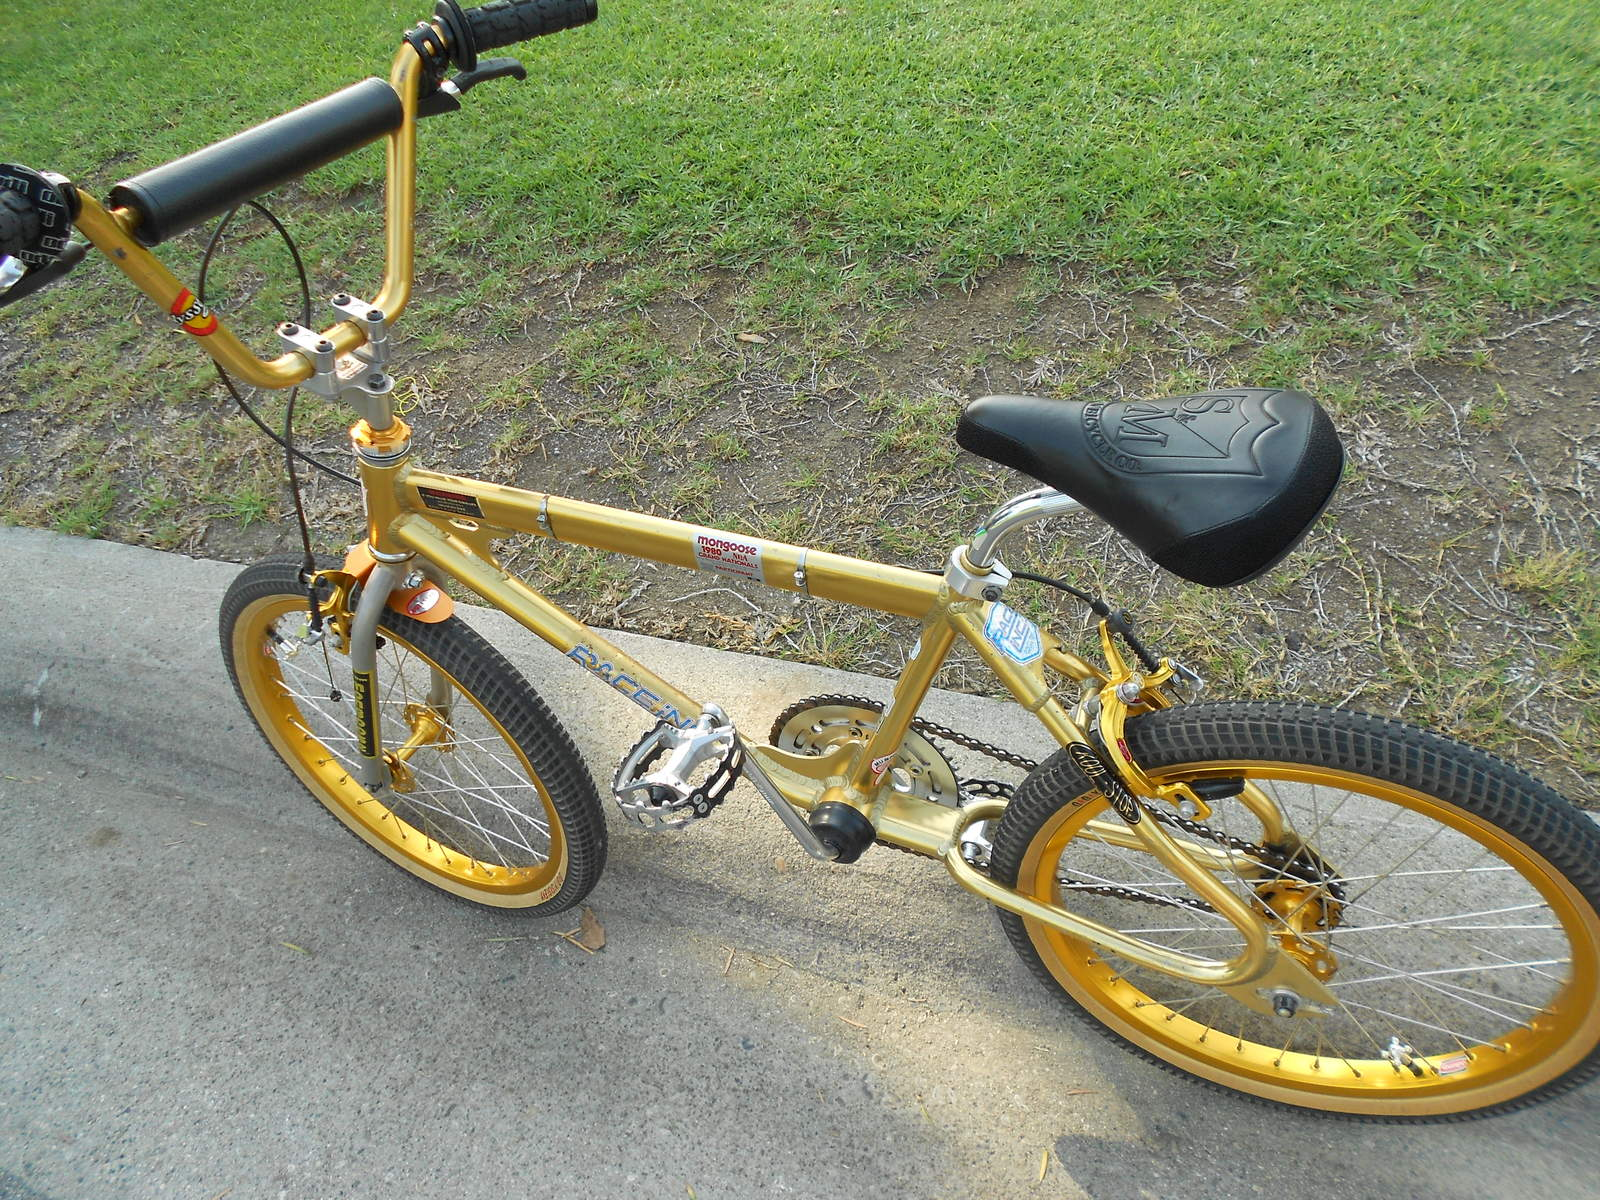 http://uploads.bmxmuseum.com/user-images/42228/ri-9-25-2018-0245bb2779017.jpg